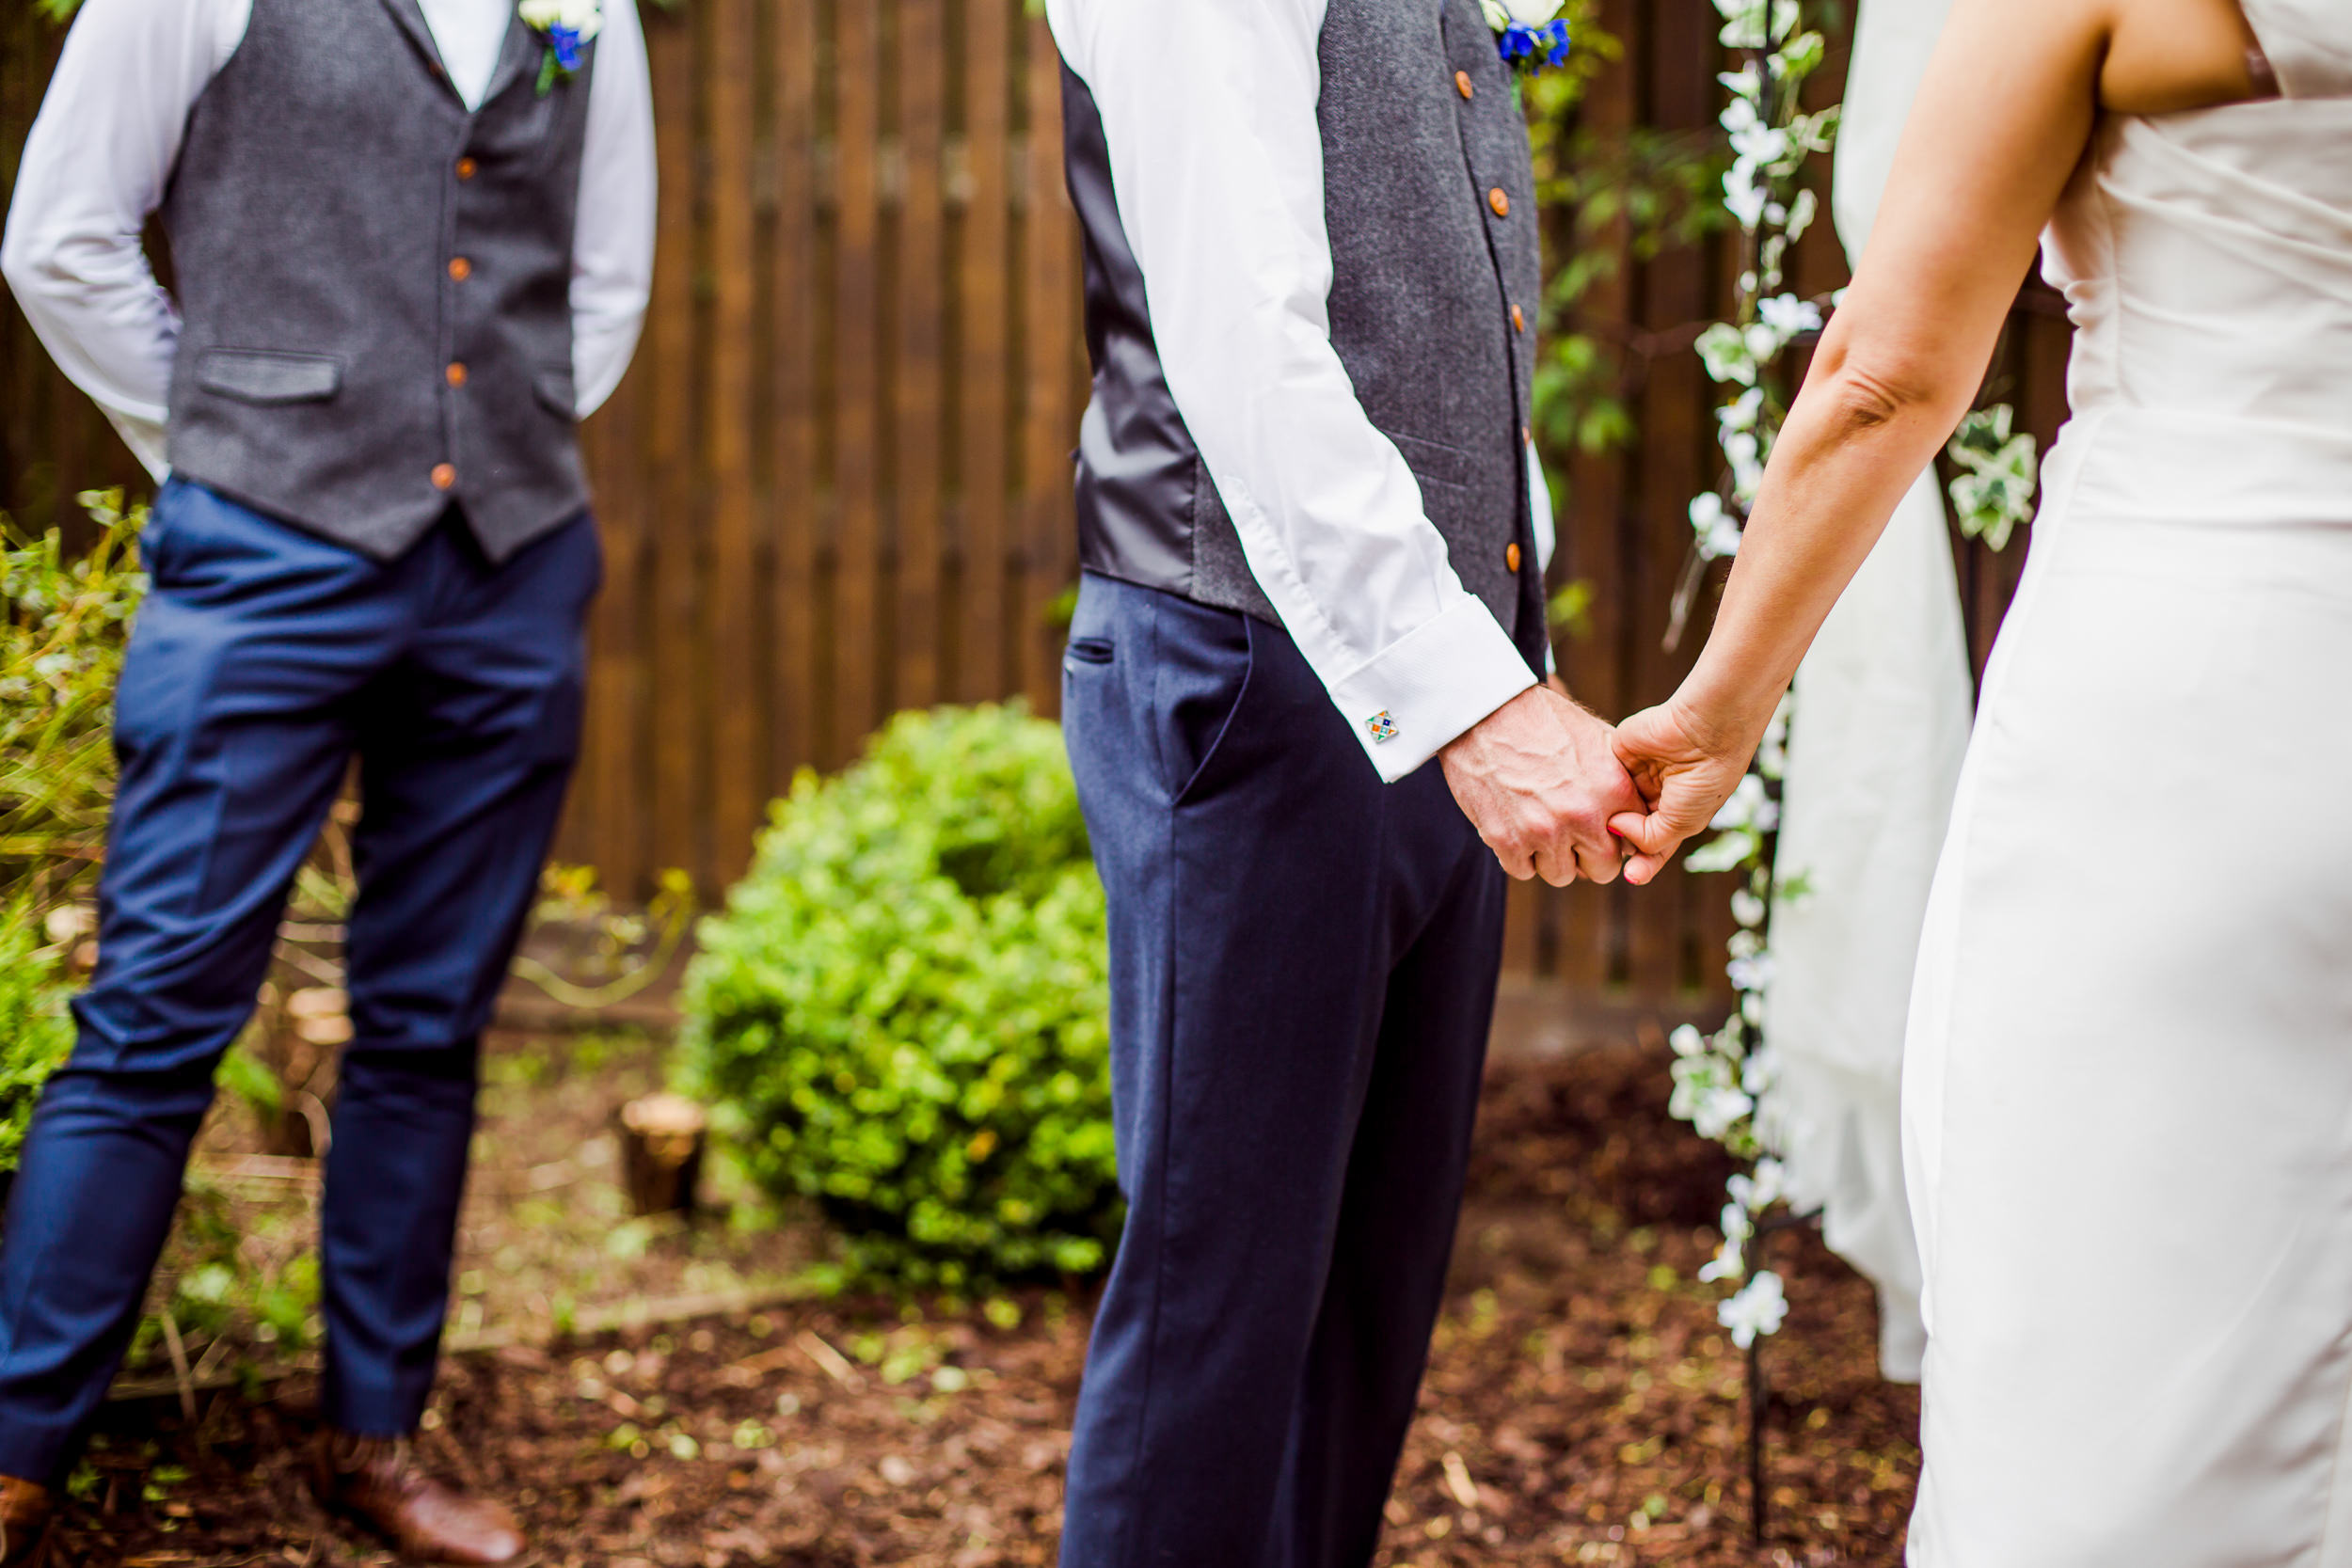 Back garden wedding - holding hands at a wedding - Yorkshire wedding